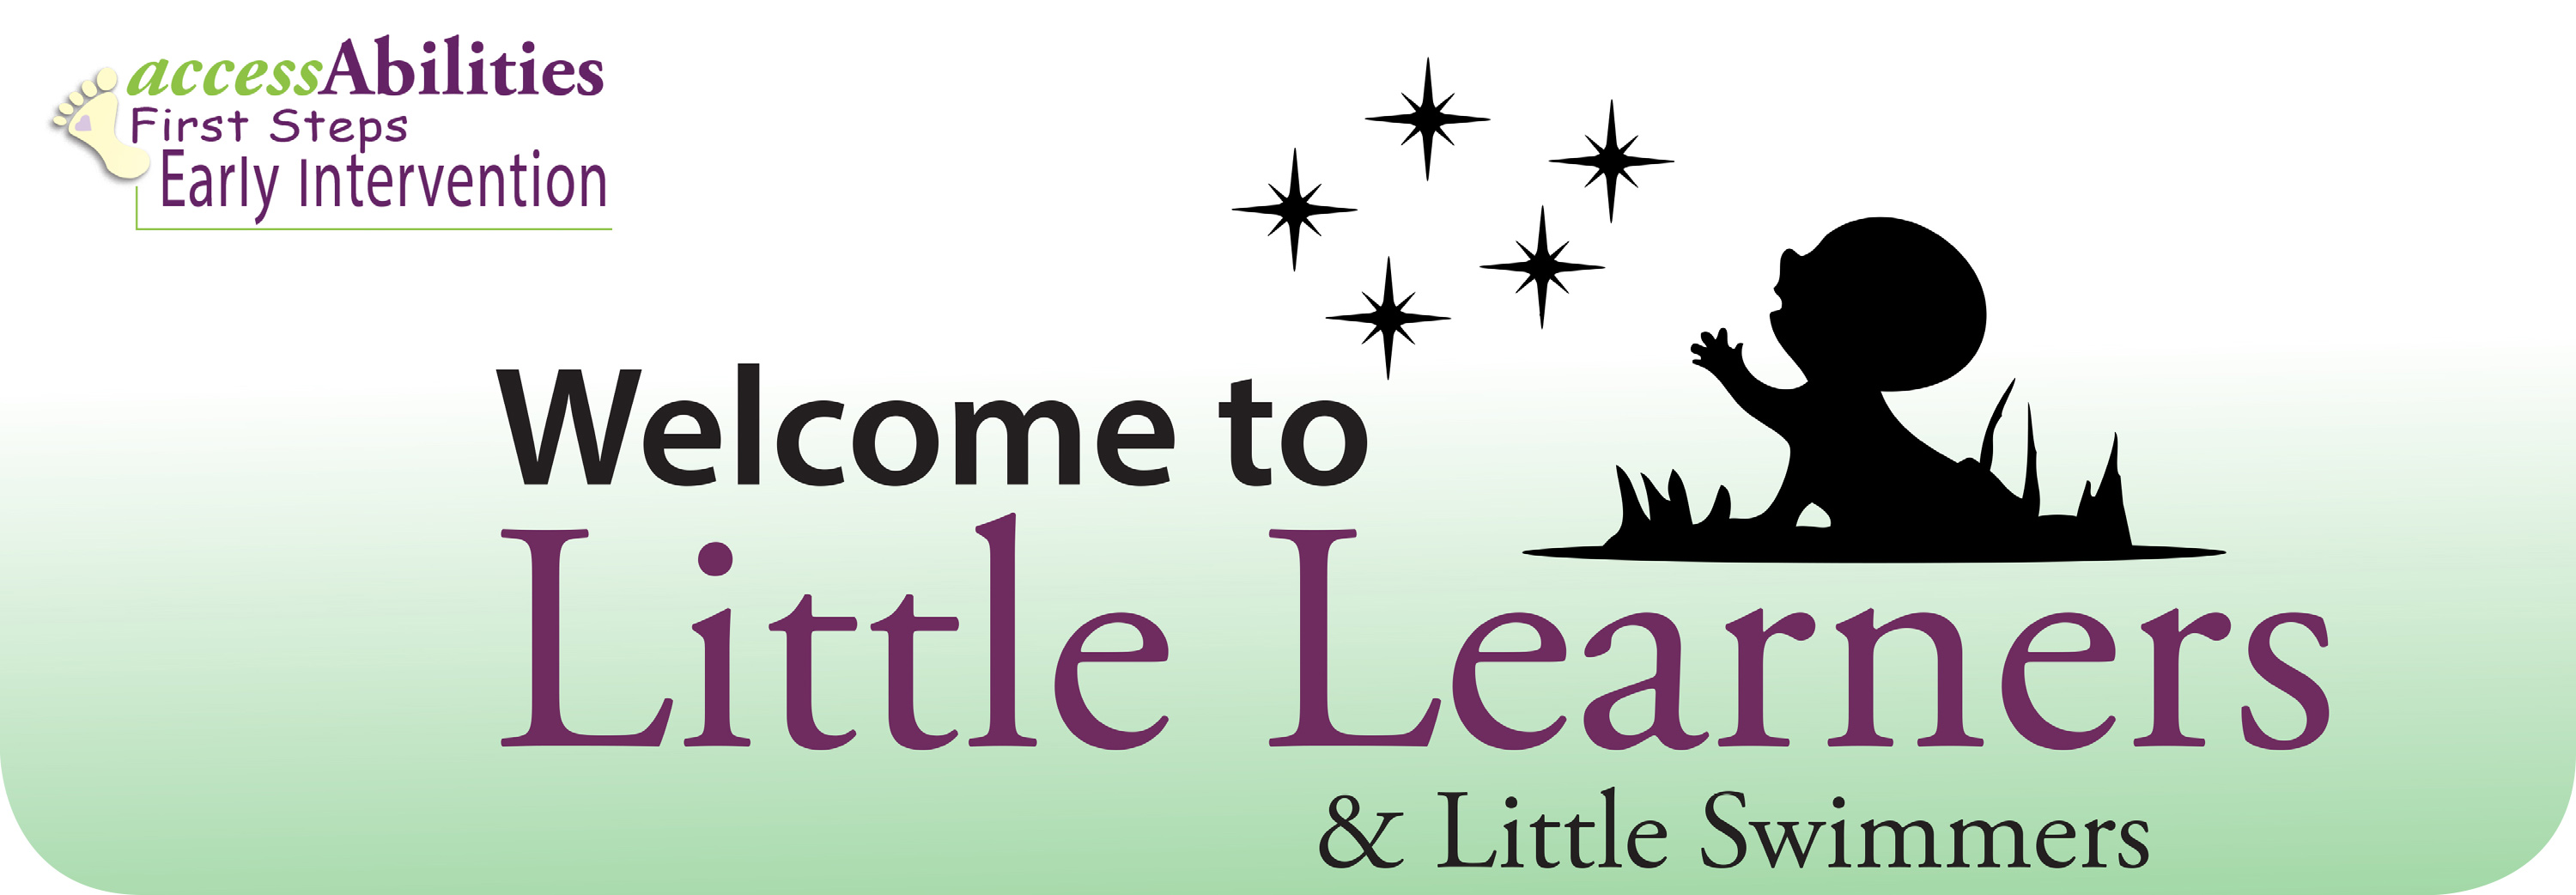 accessAbilities Little Learners Play Group